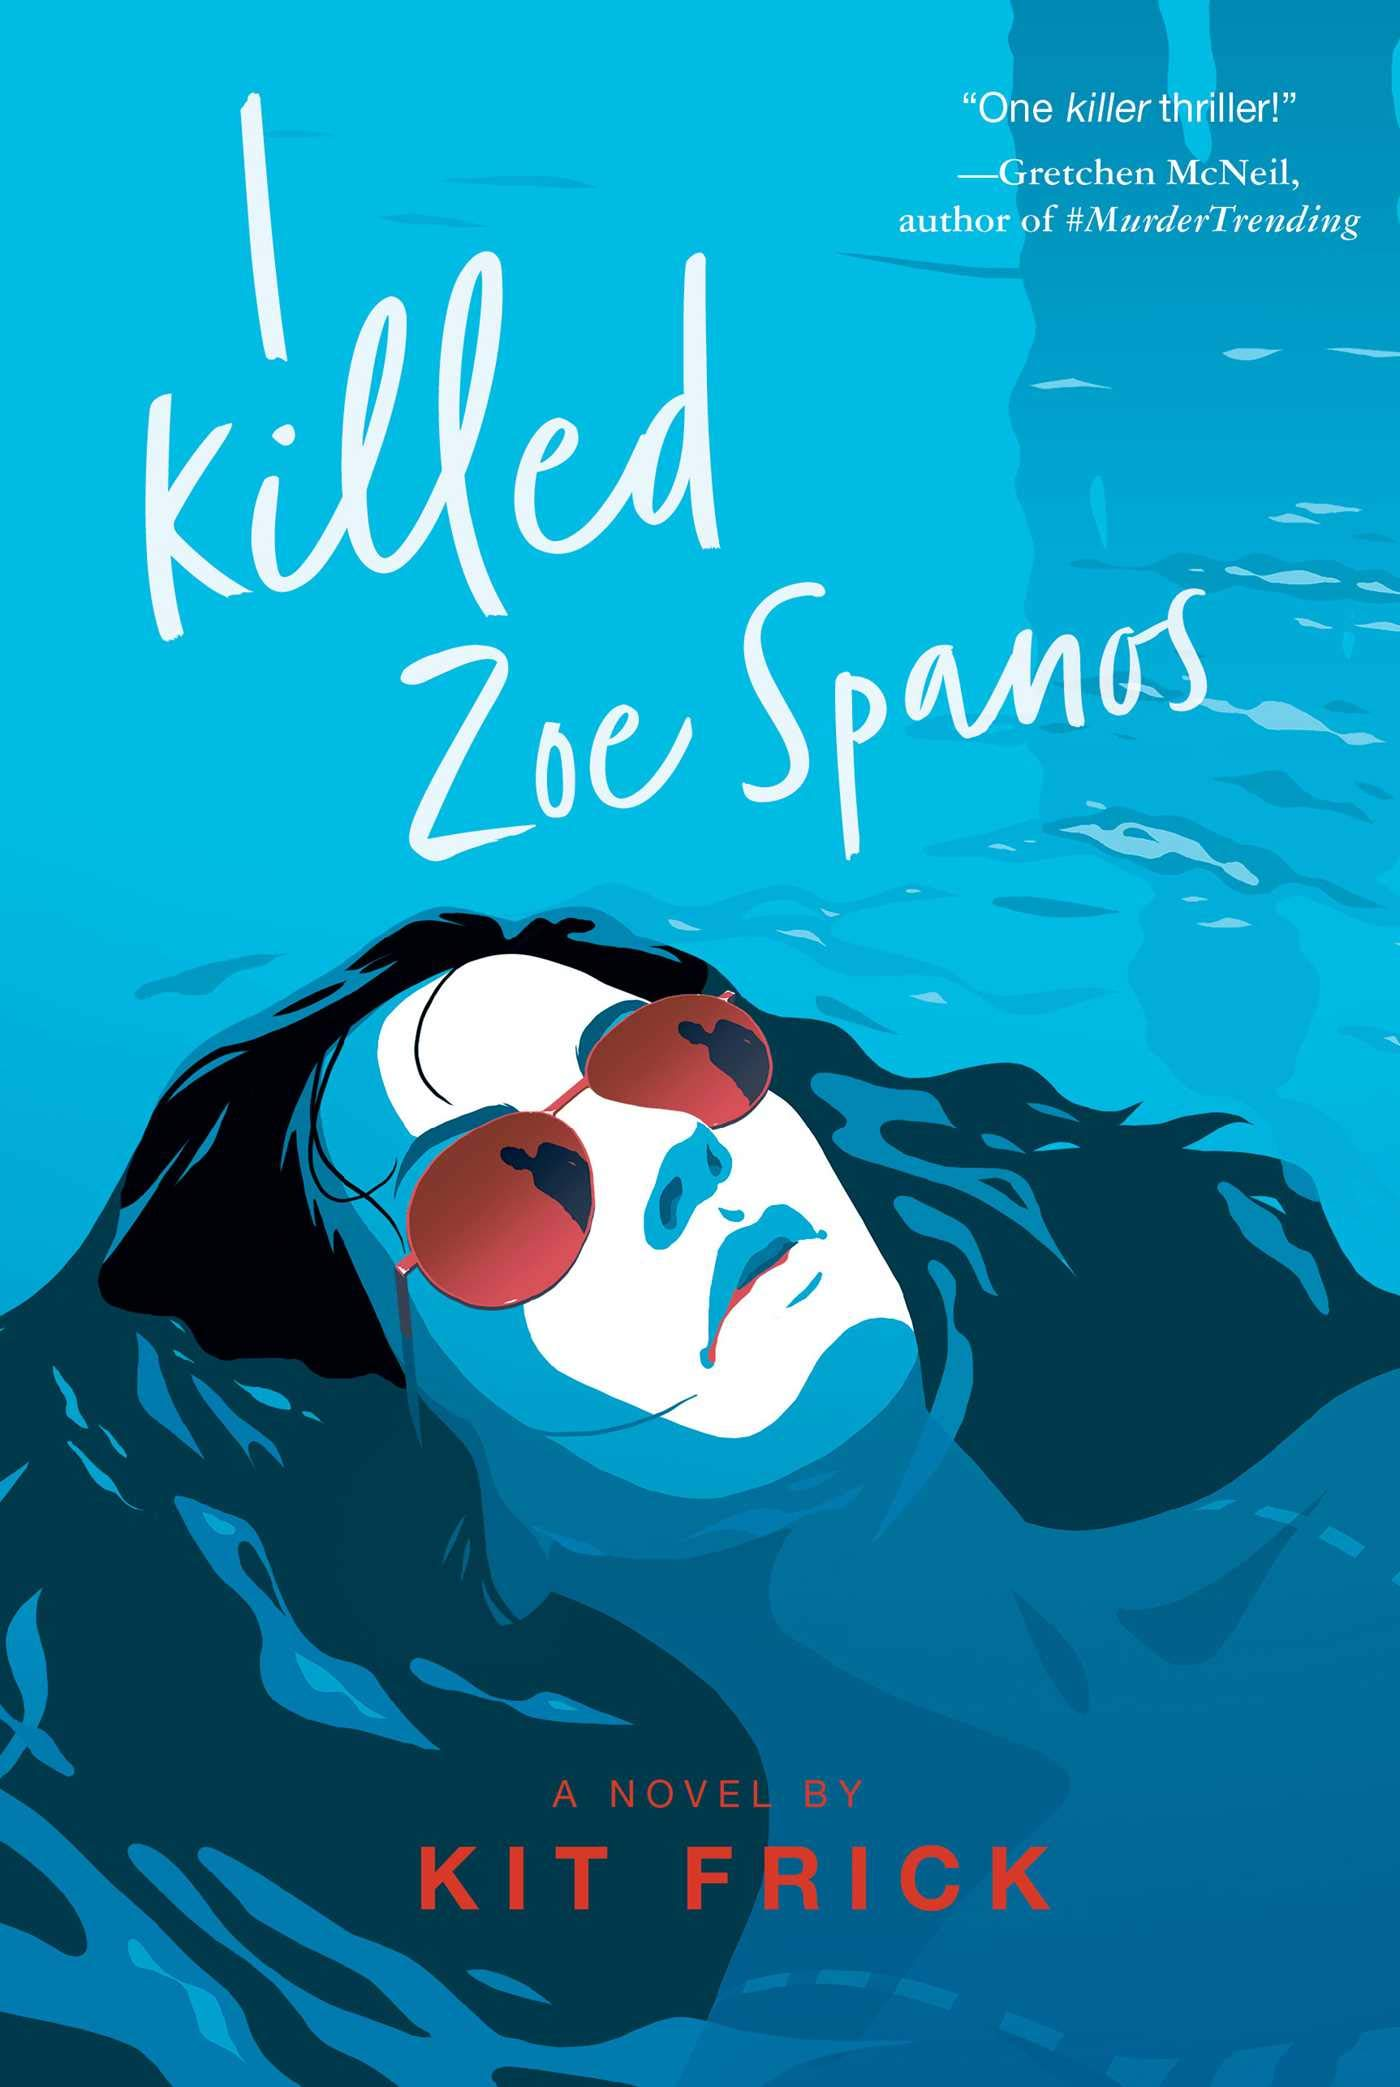 Image result for i killed zoe spanos